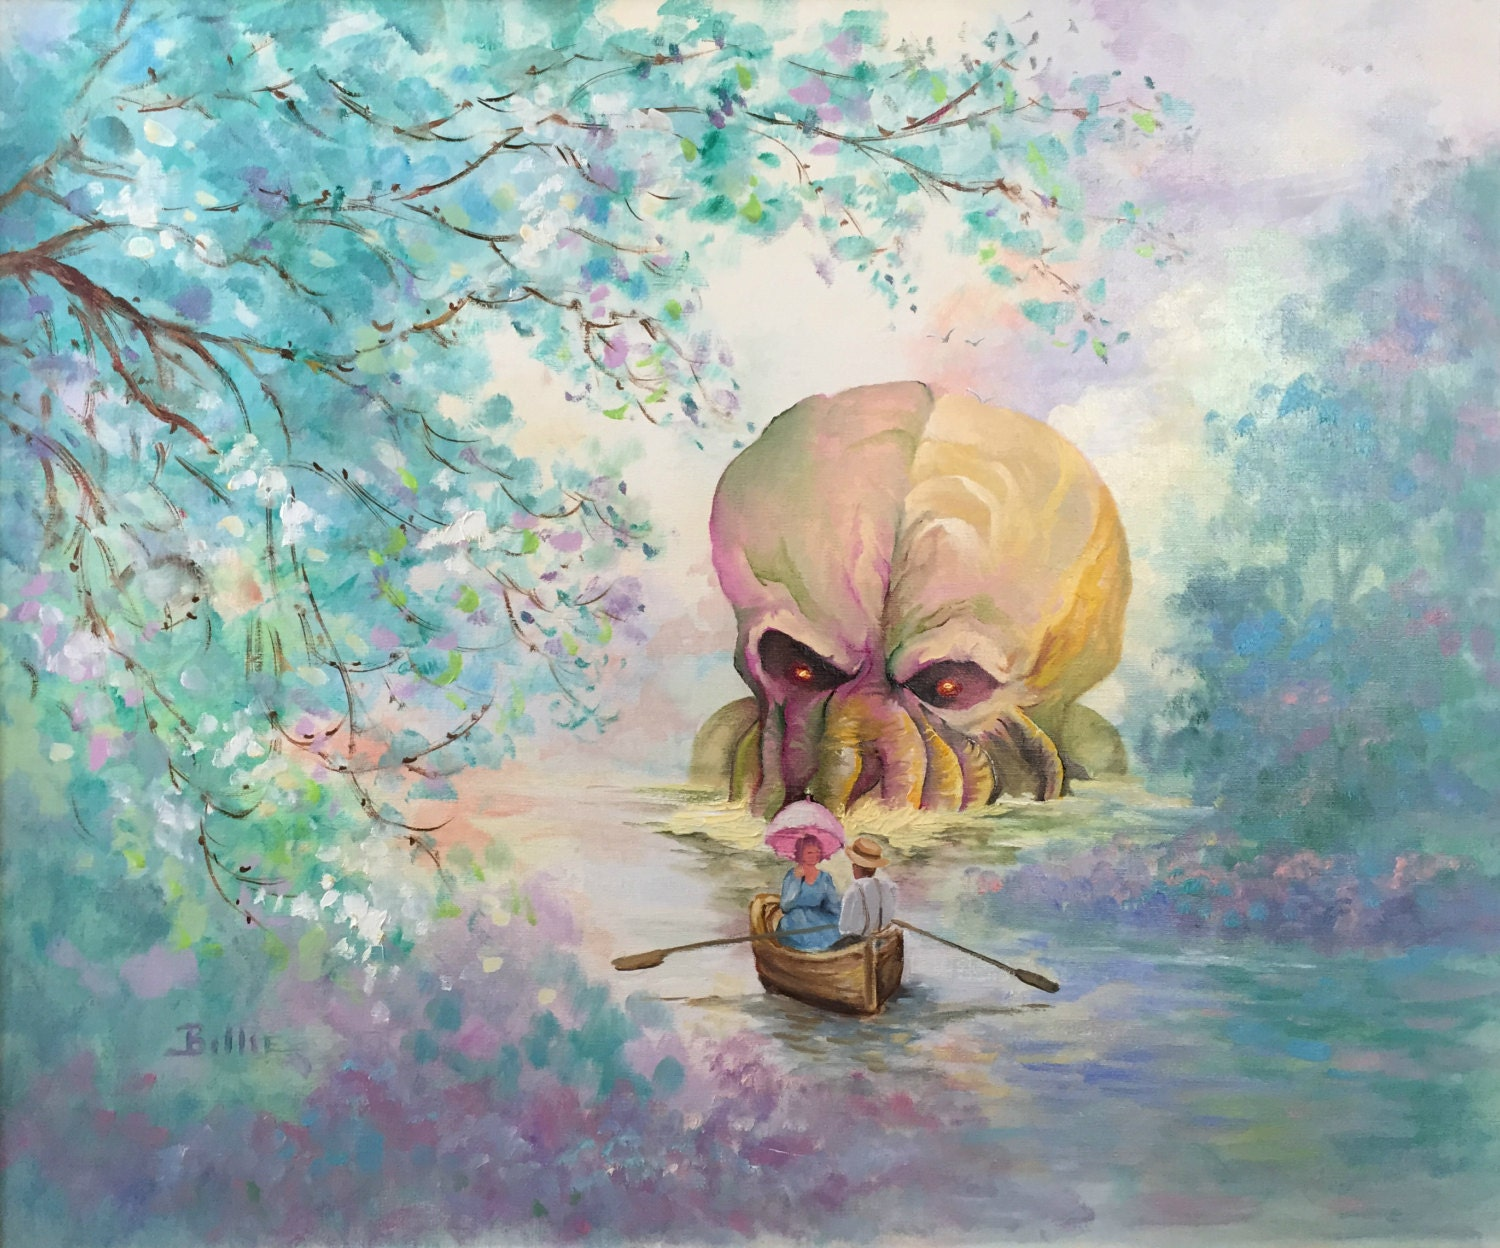 Https Www Etsy Com Listing 229042808 Hp Lovecraft Cthulhu Parody Painting